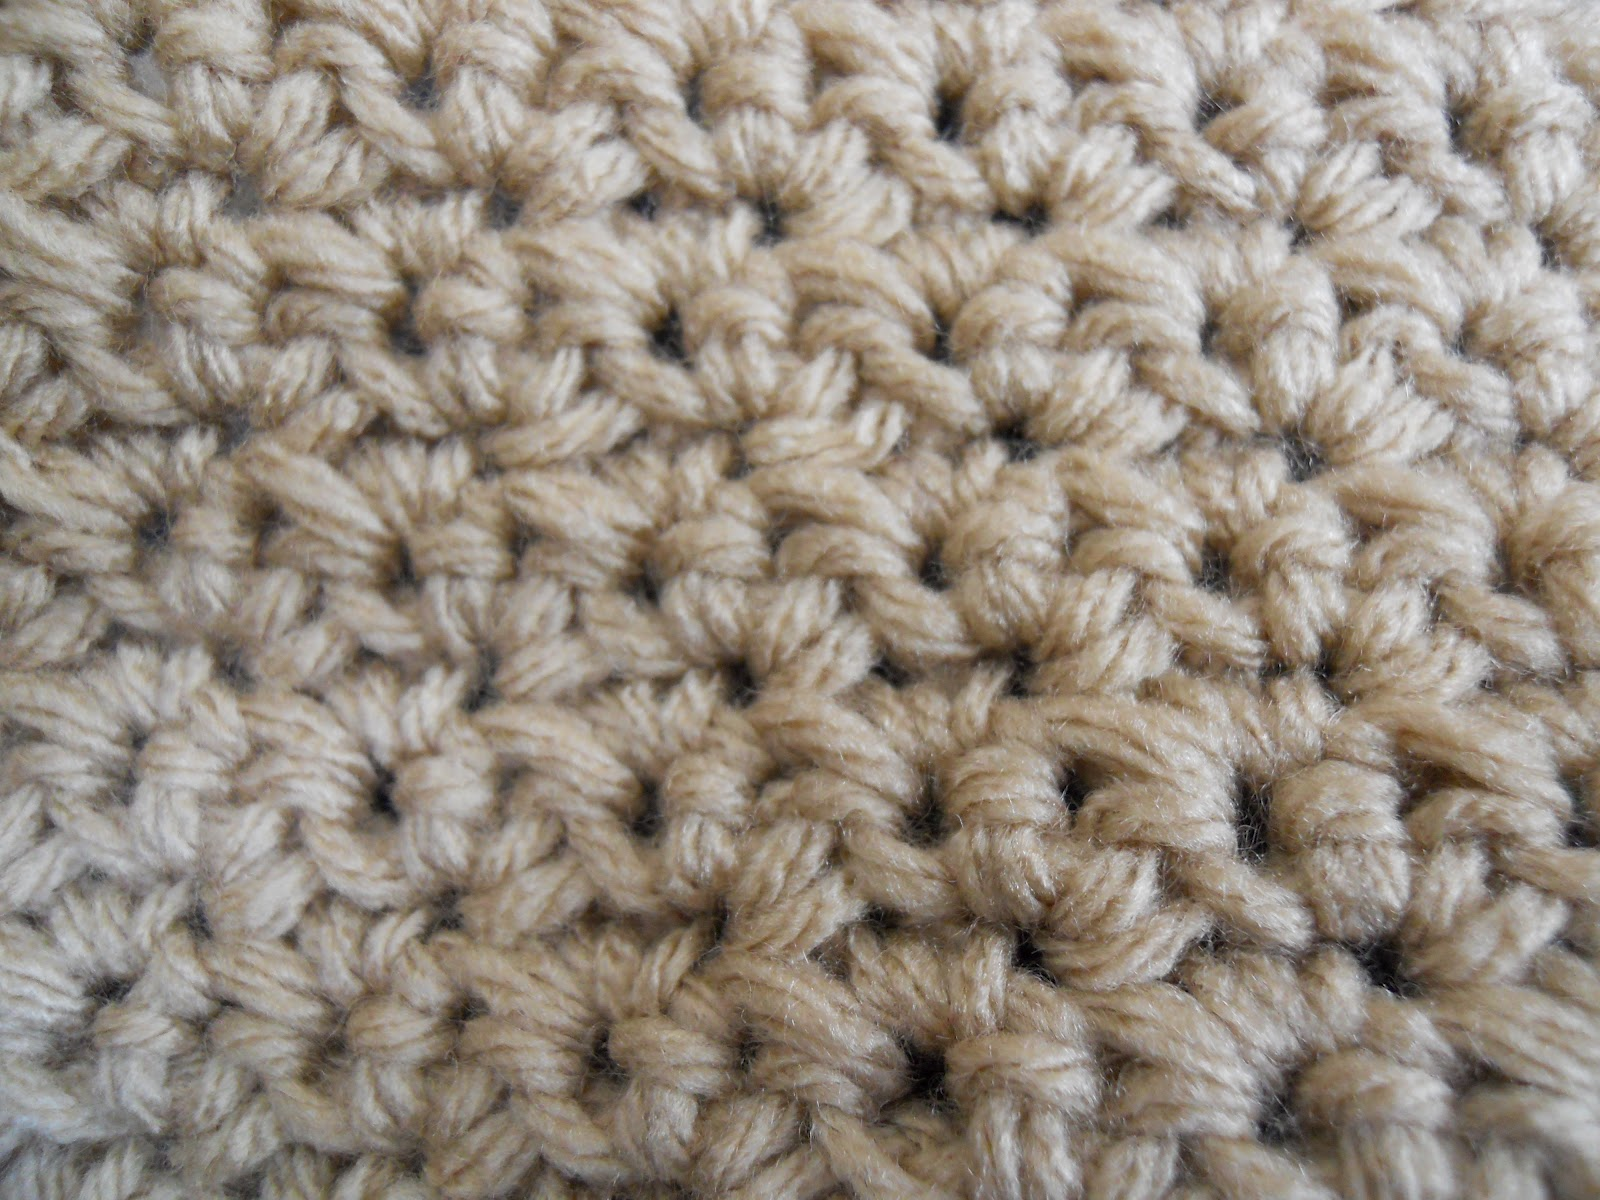 Crochet Stitches Grit : Collection of Crochet Stitches: Stitch Combination: Grit Stitch